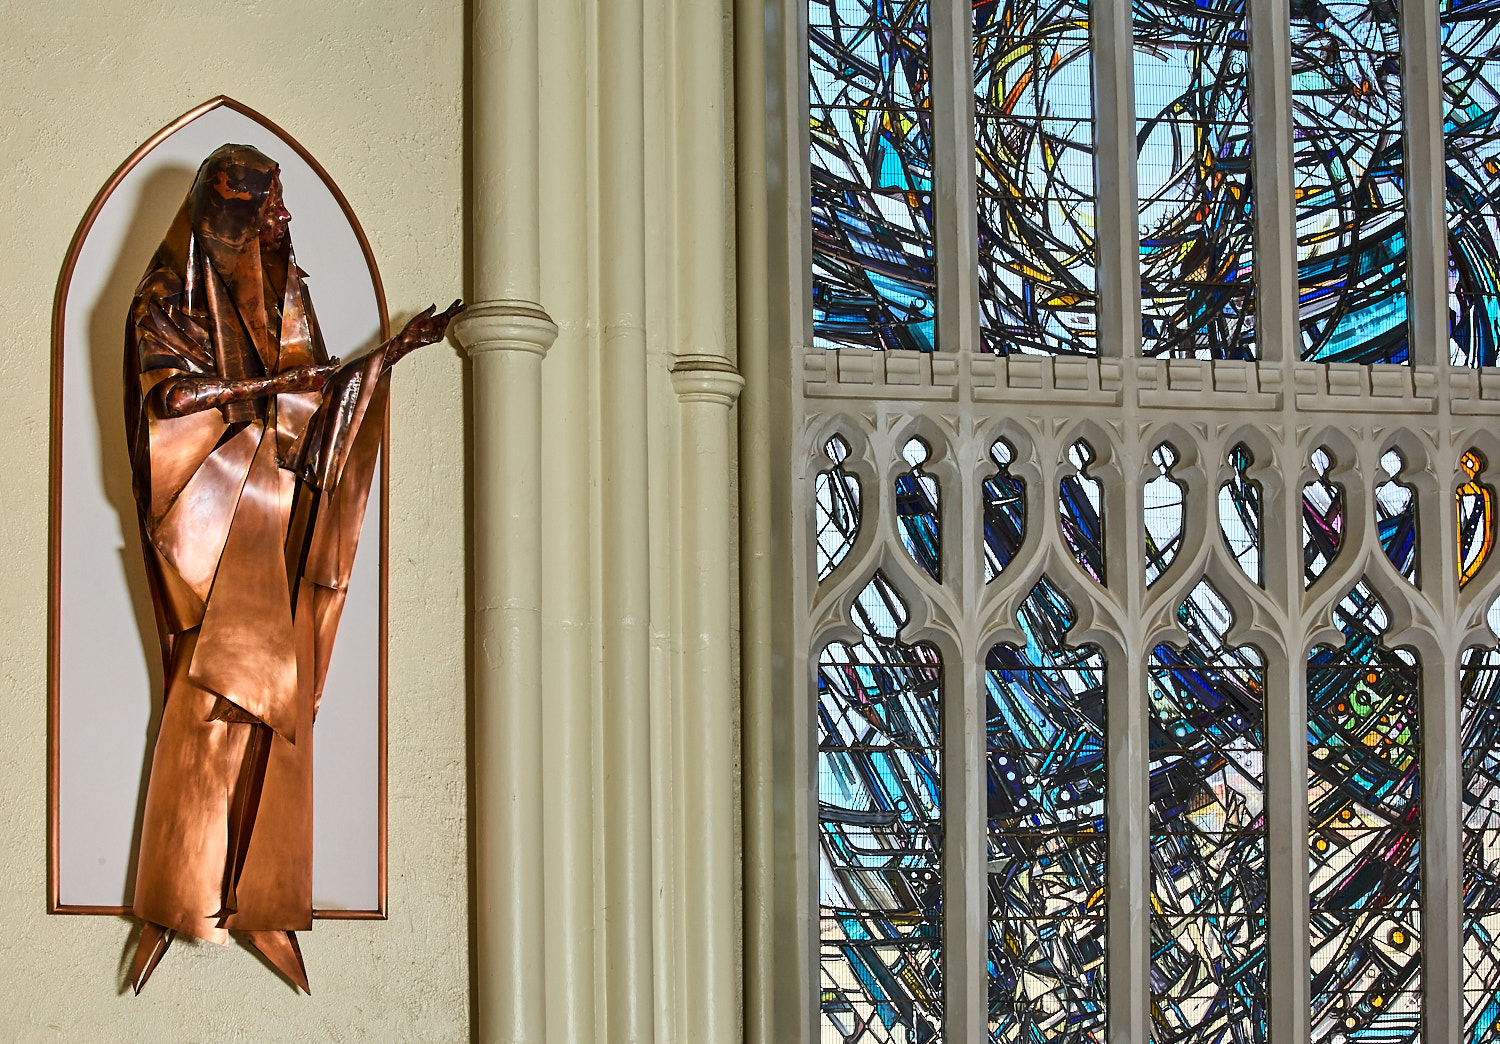 Pilgrimage – East Window and Two Sculptures